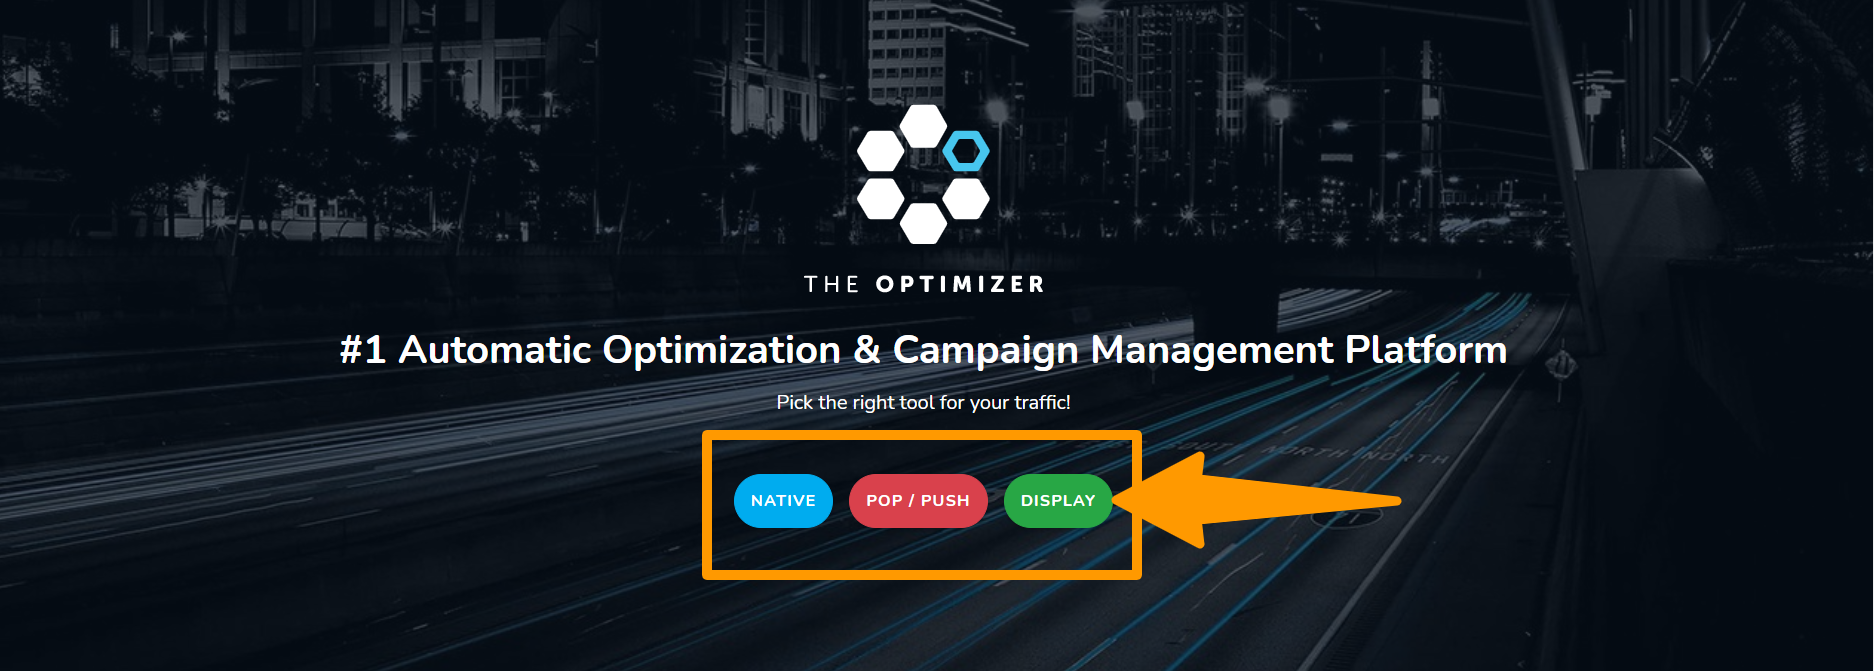 TheOptimizer- Overview